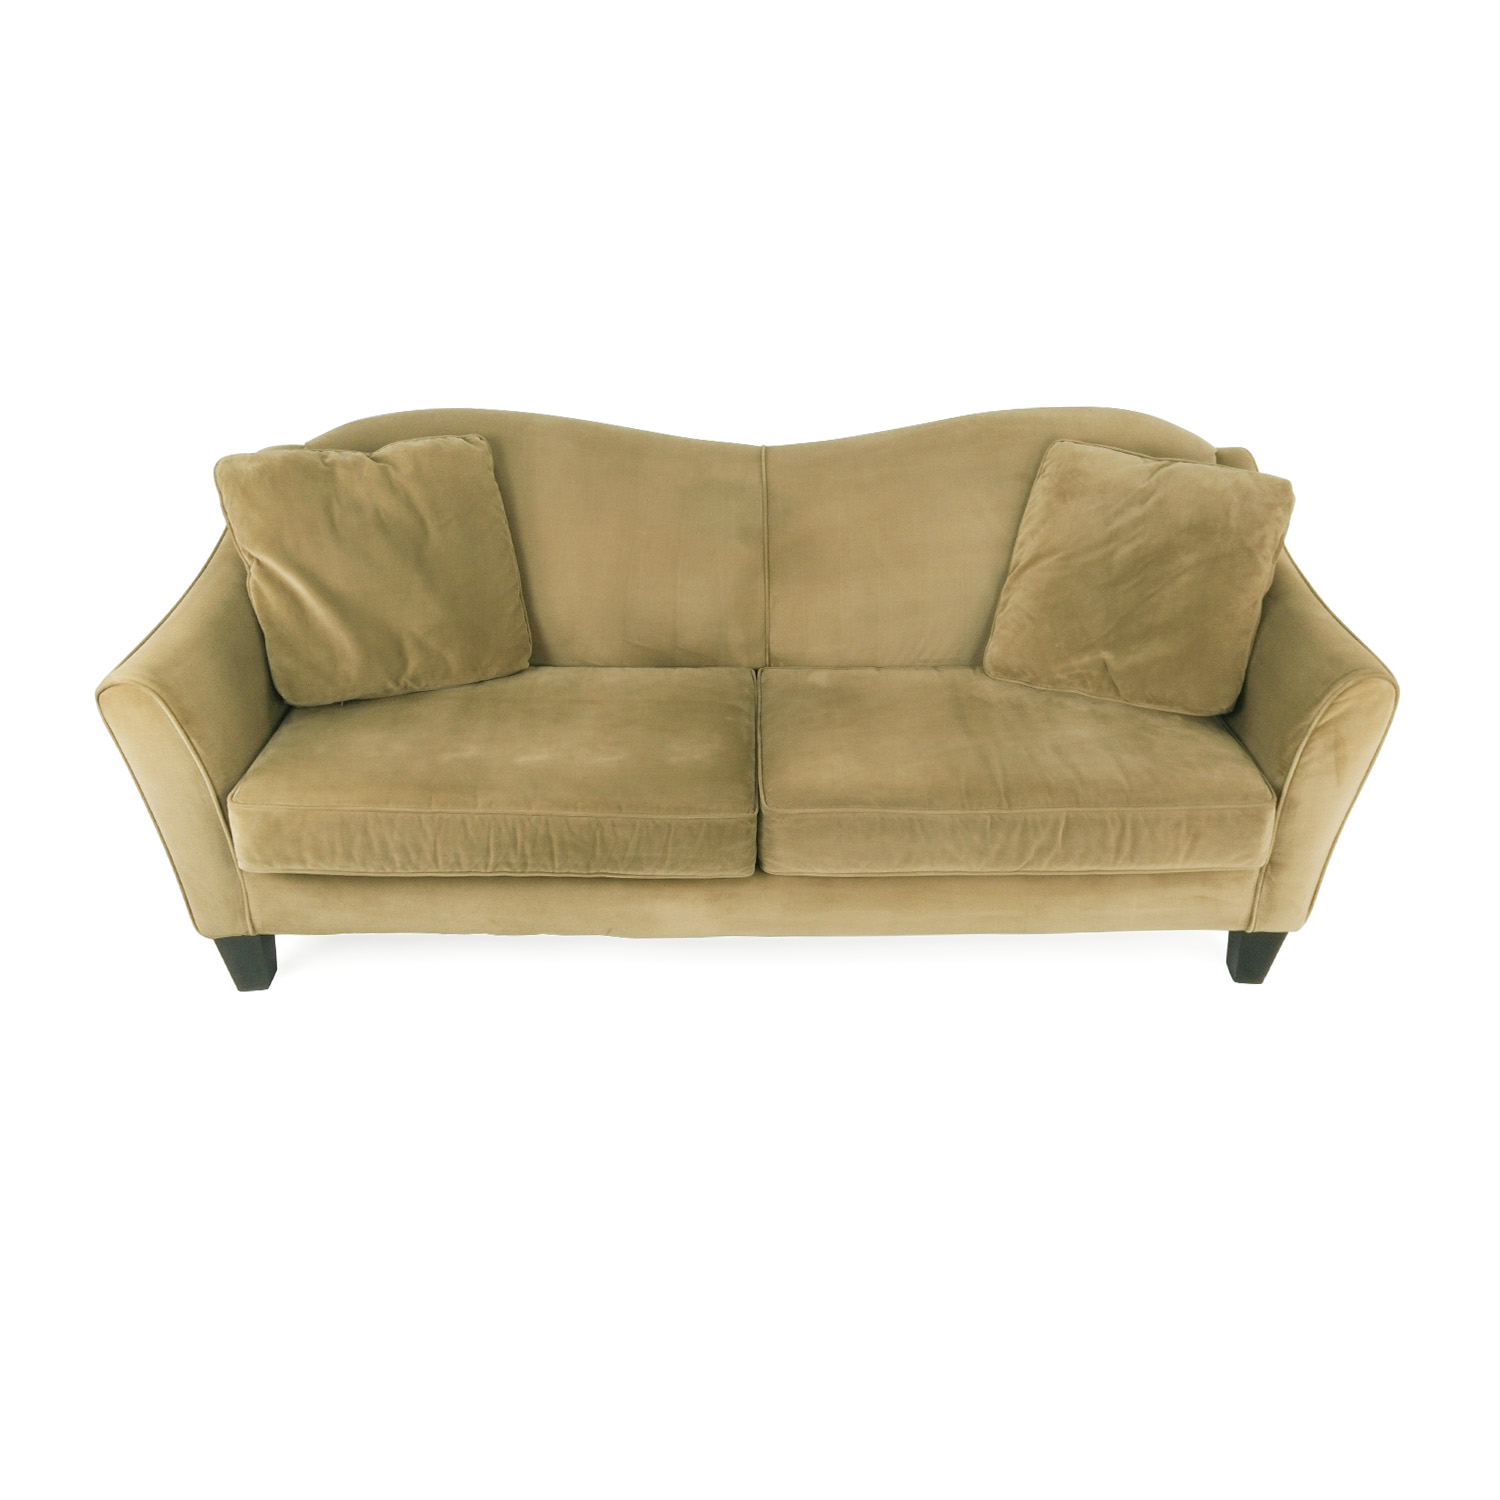 75 off raymour and flanigan raymour and flanigan for Classic loveseat